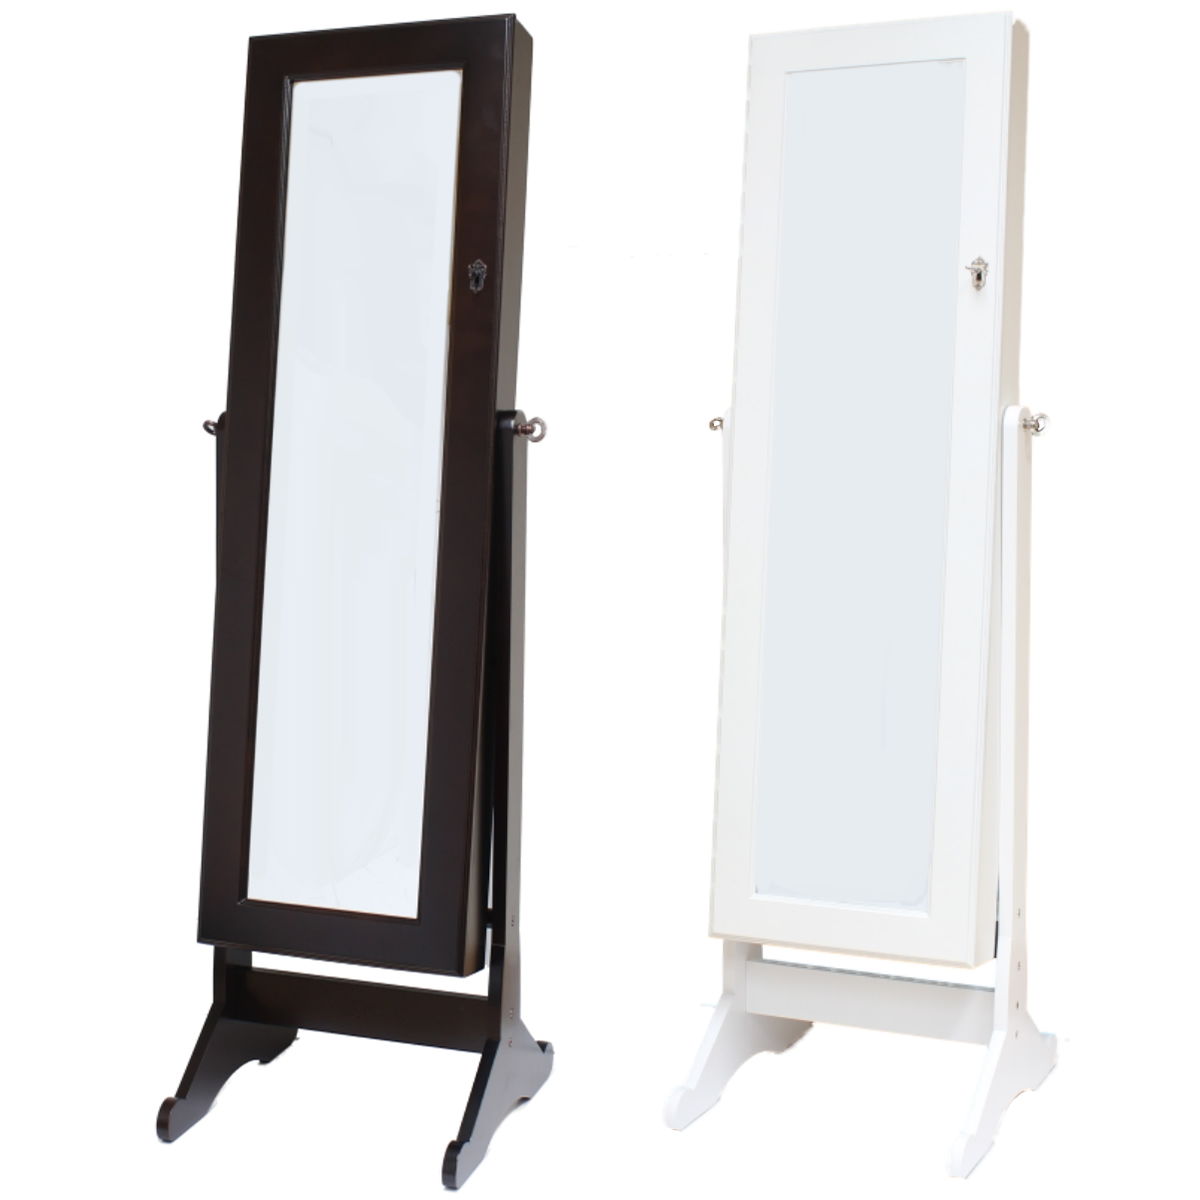 Large floor standing bedroom mirror jewellery box cabinet for Standing mirror for bedroom